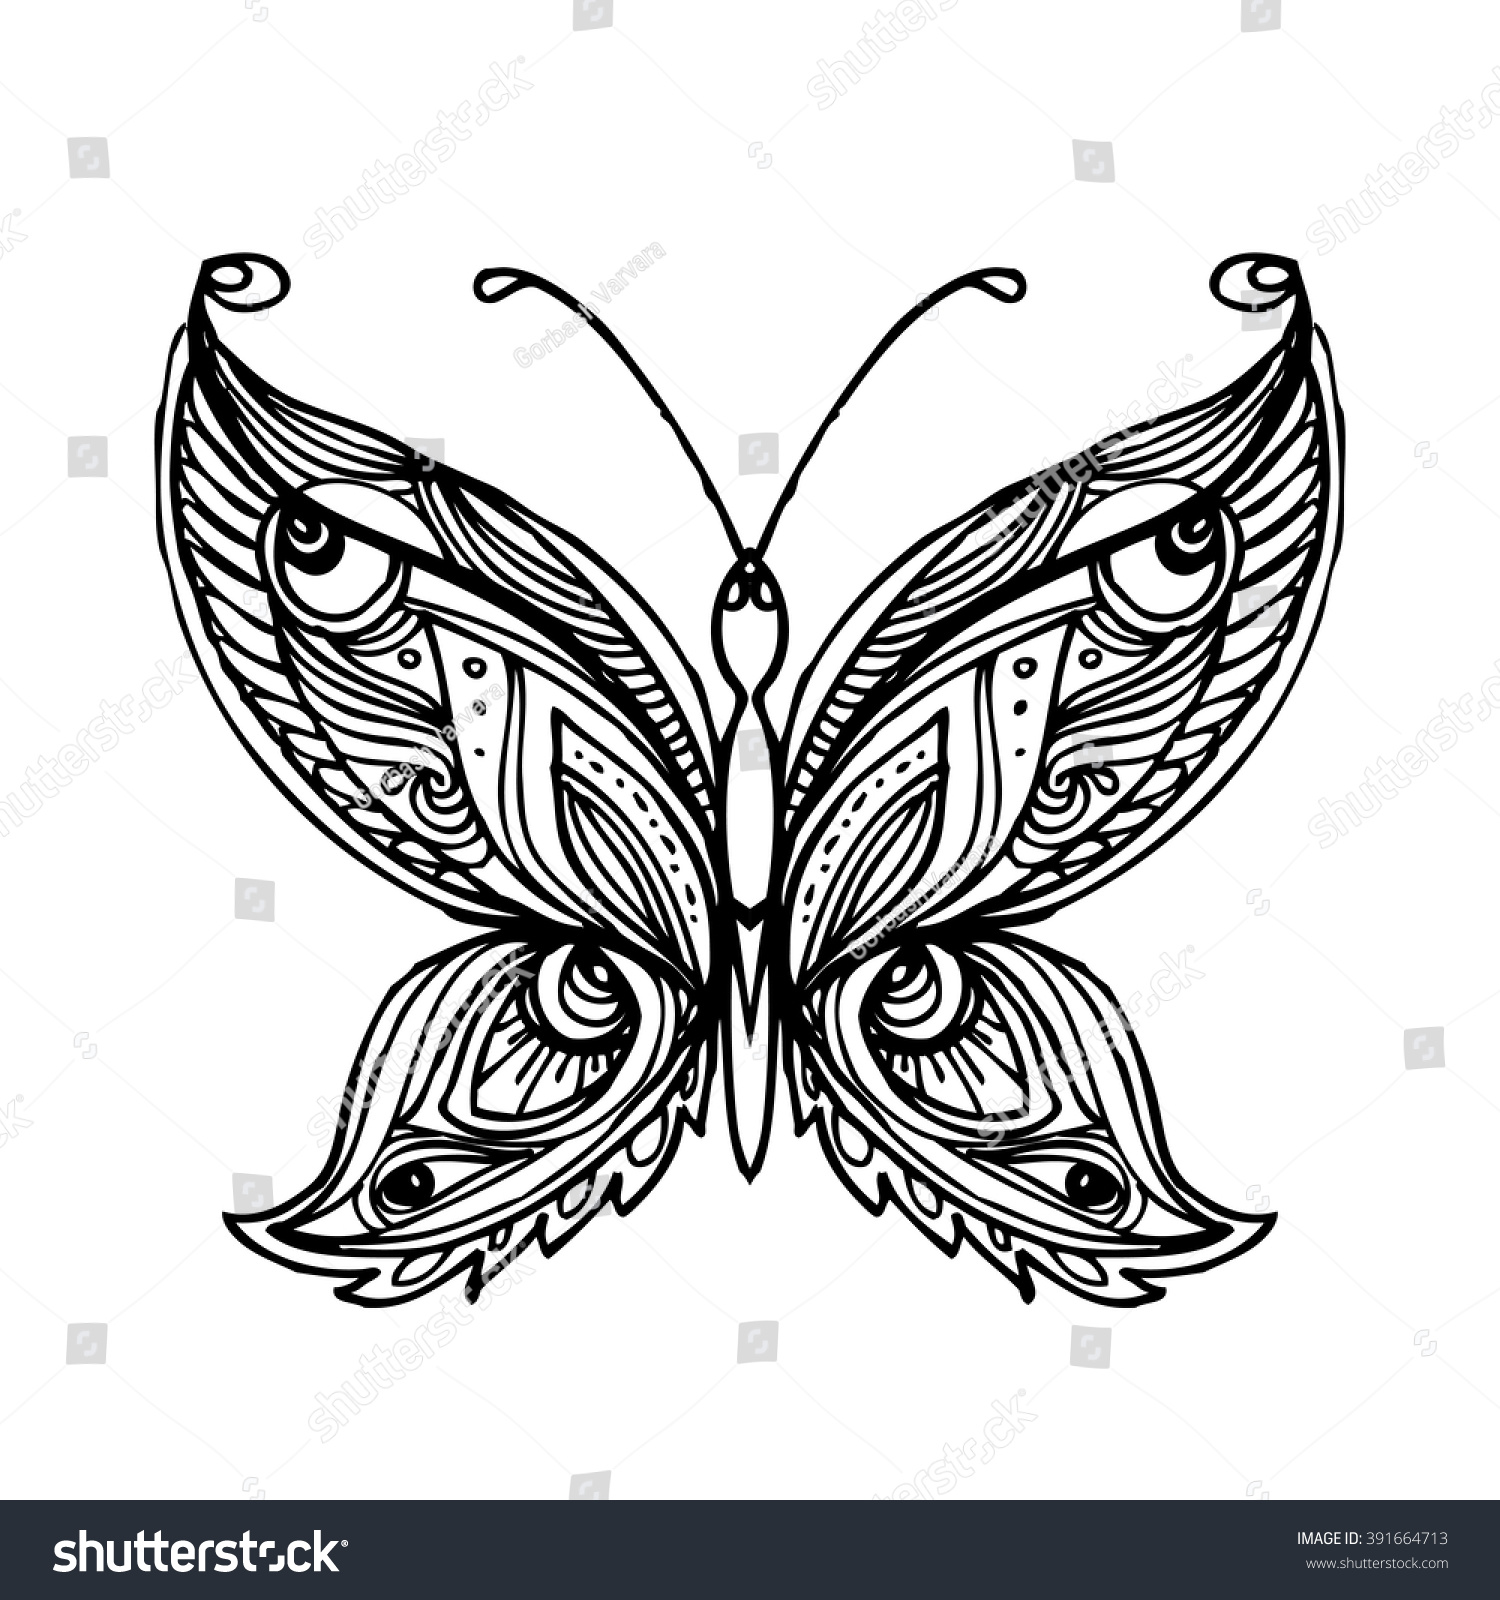 Decorative Butterfly Coloring Book For Adult And Older Children Page Outline Drawing Vector Illustration